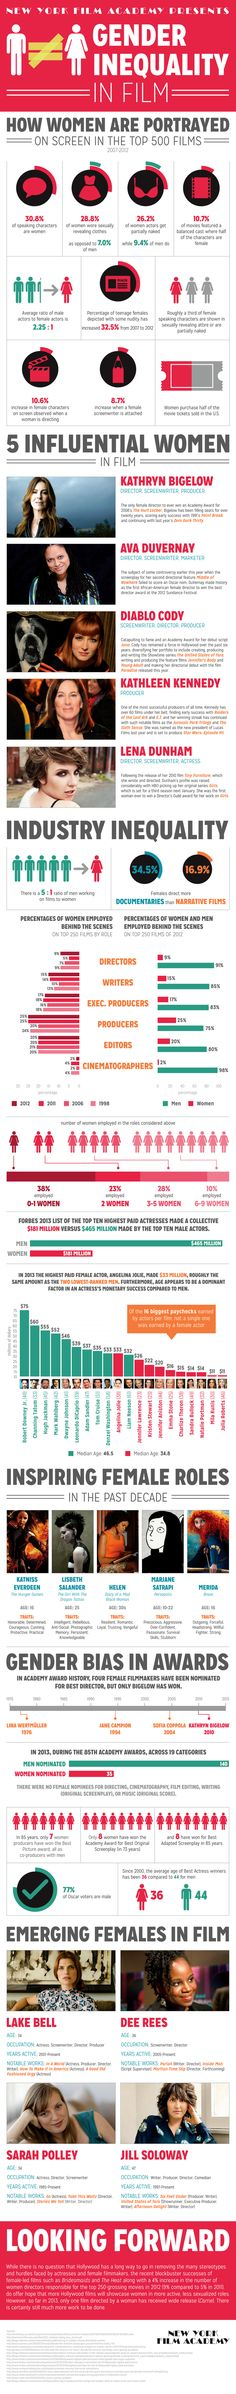 The Truth About Gender Inequality In Film